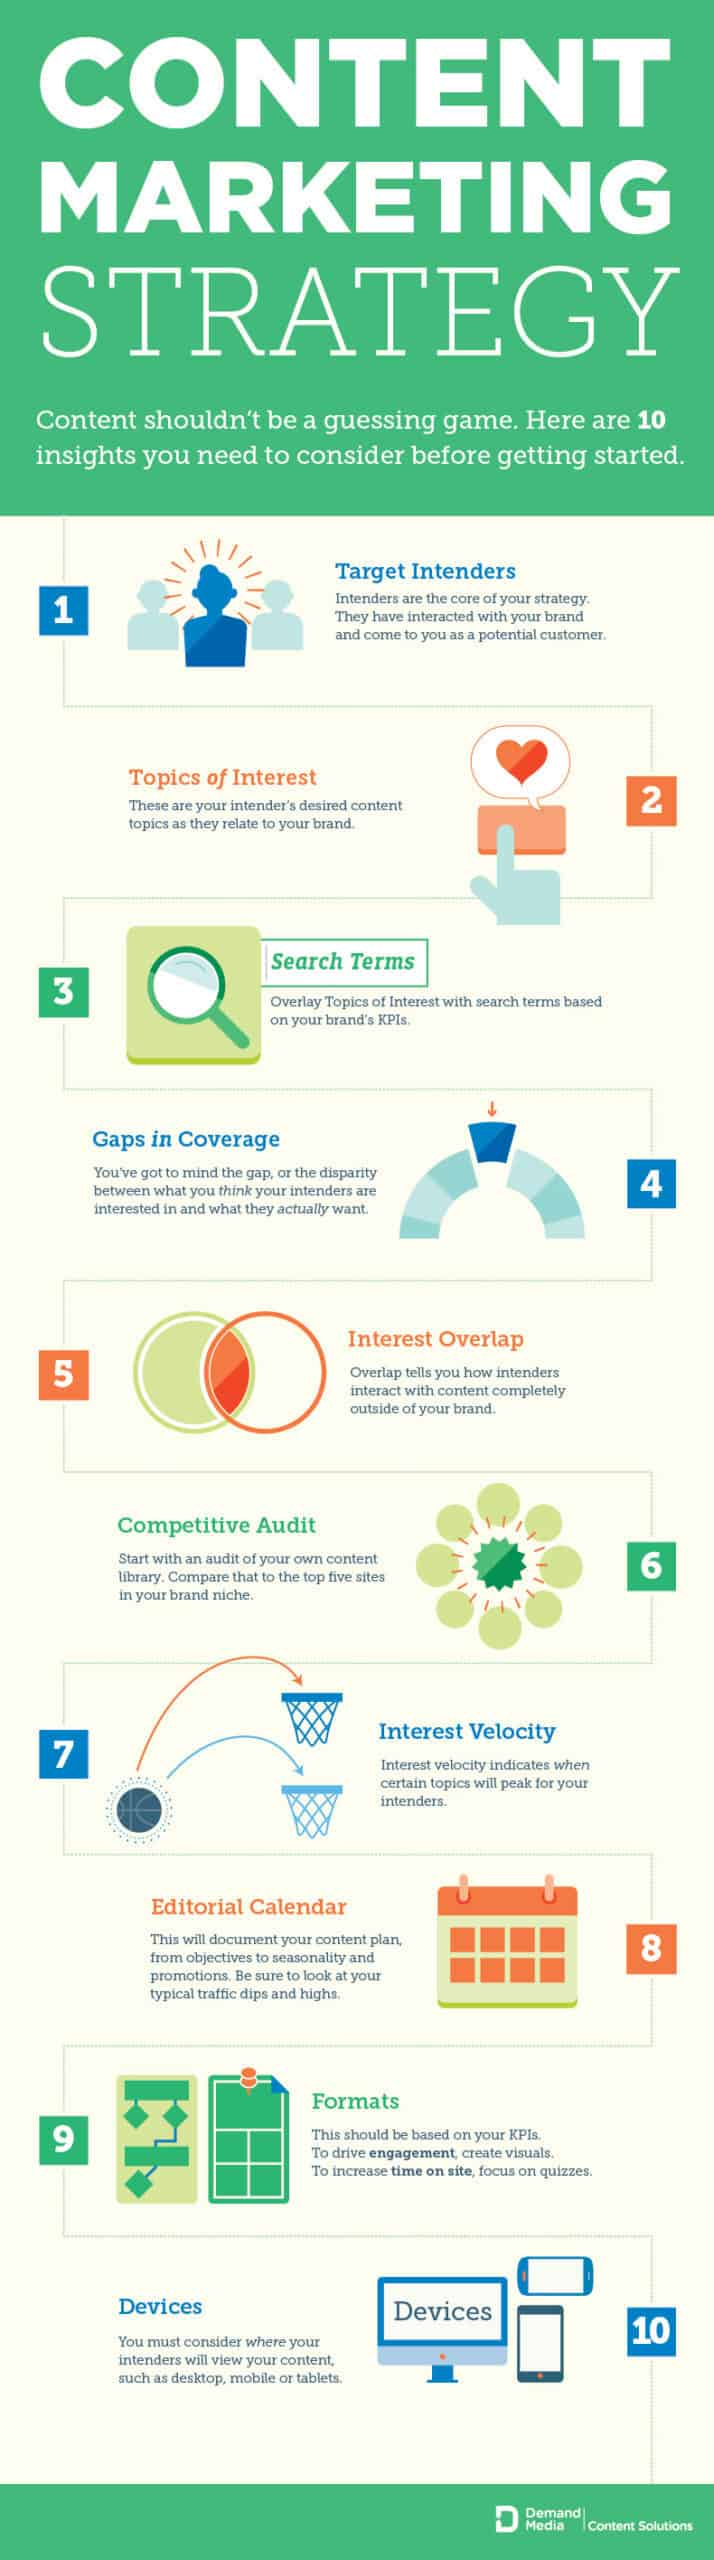 For more information and additional insights on what you need to consider before crafting your content marketing strategy, check out this amazing infographic.